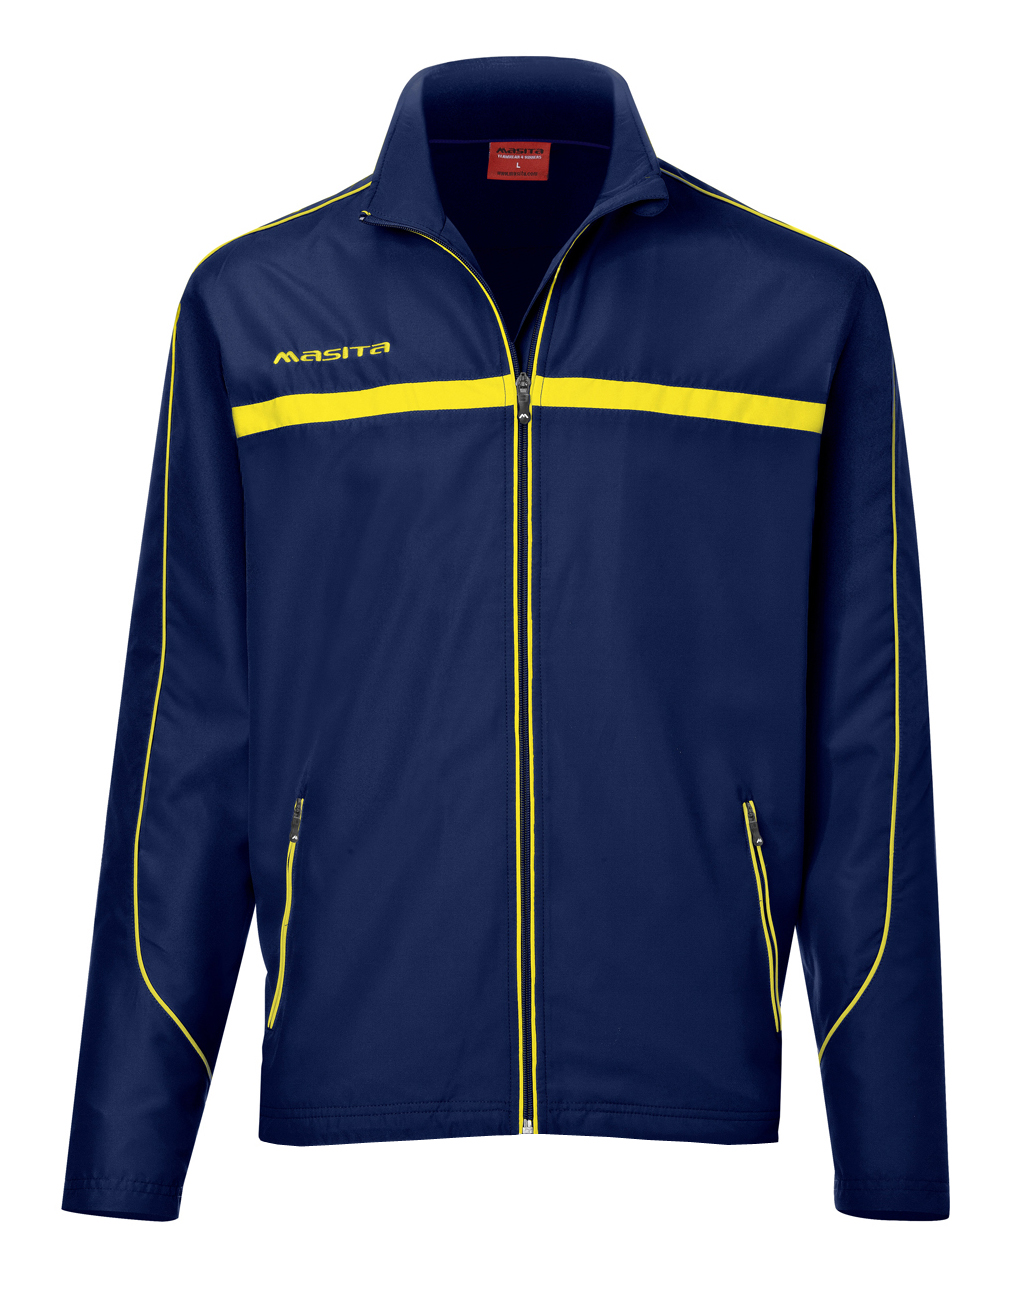 Presentation Jacket Brasil  Navy Blue / Yellow